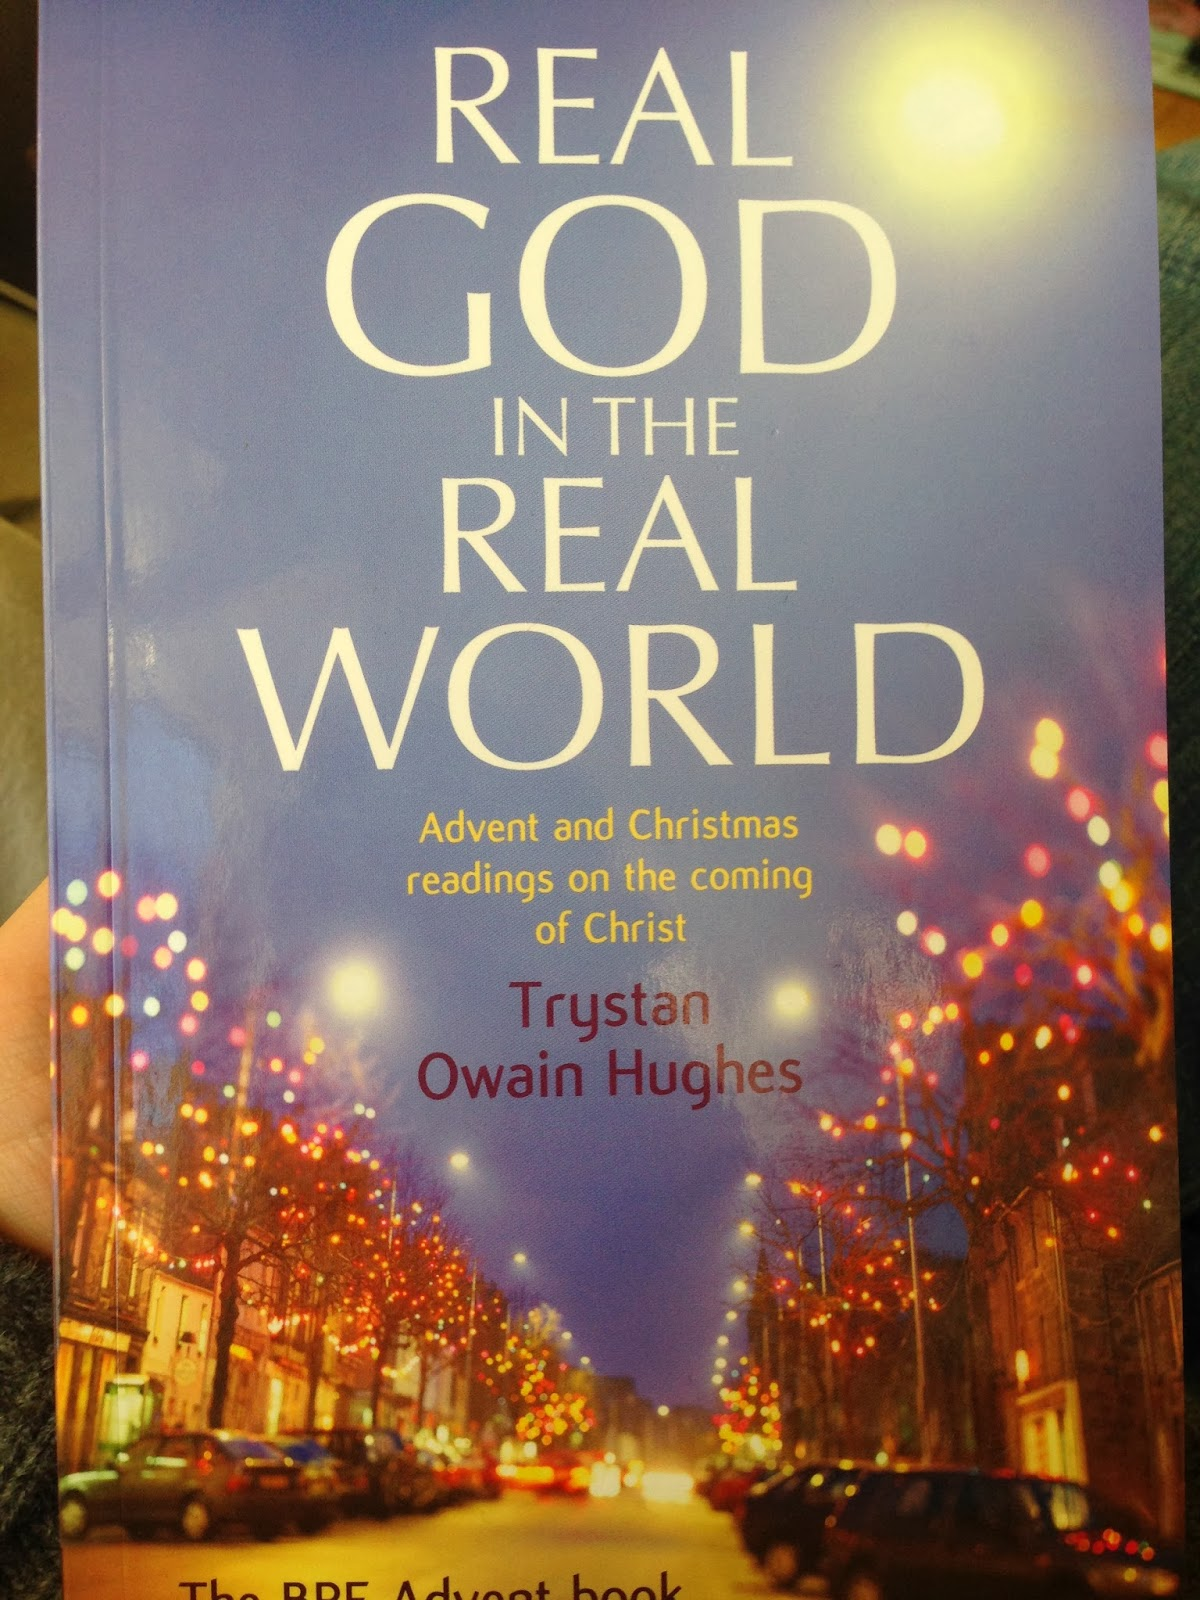 Pictures Of The Real God Book P Review Real God In The Real World Thomas Creedy